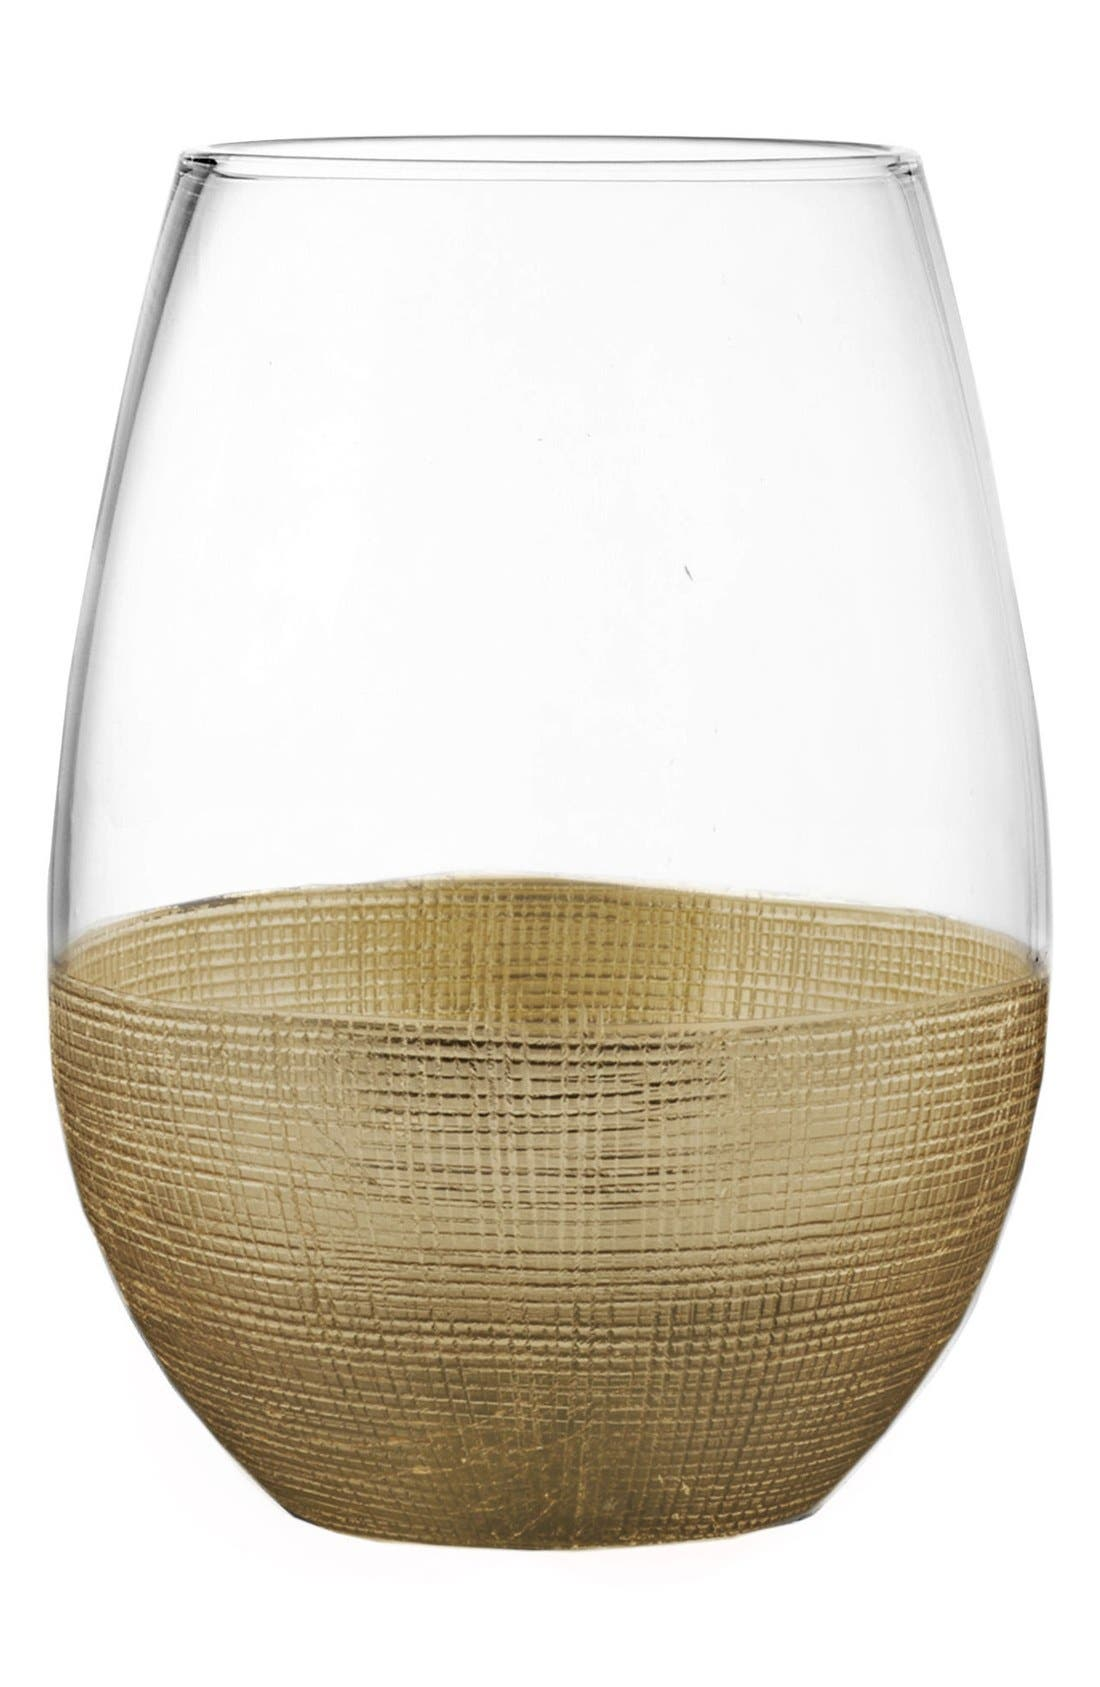 American Atelier Linen Set of 4 Stemless Wine Glasses